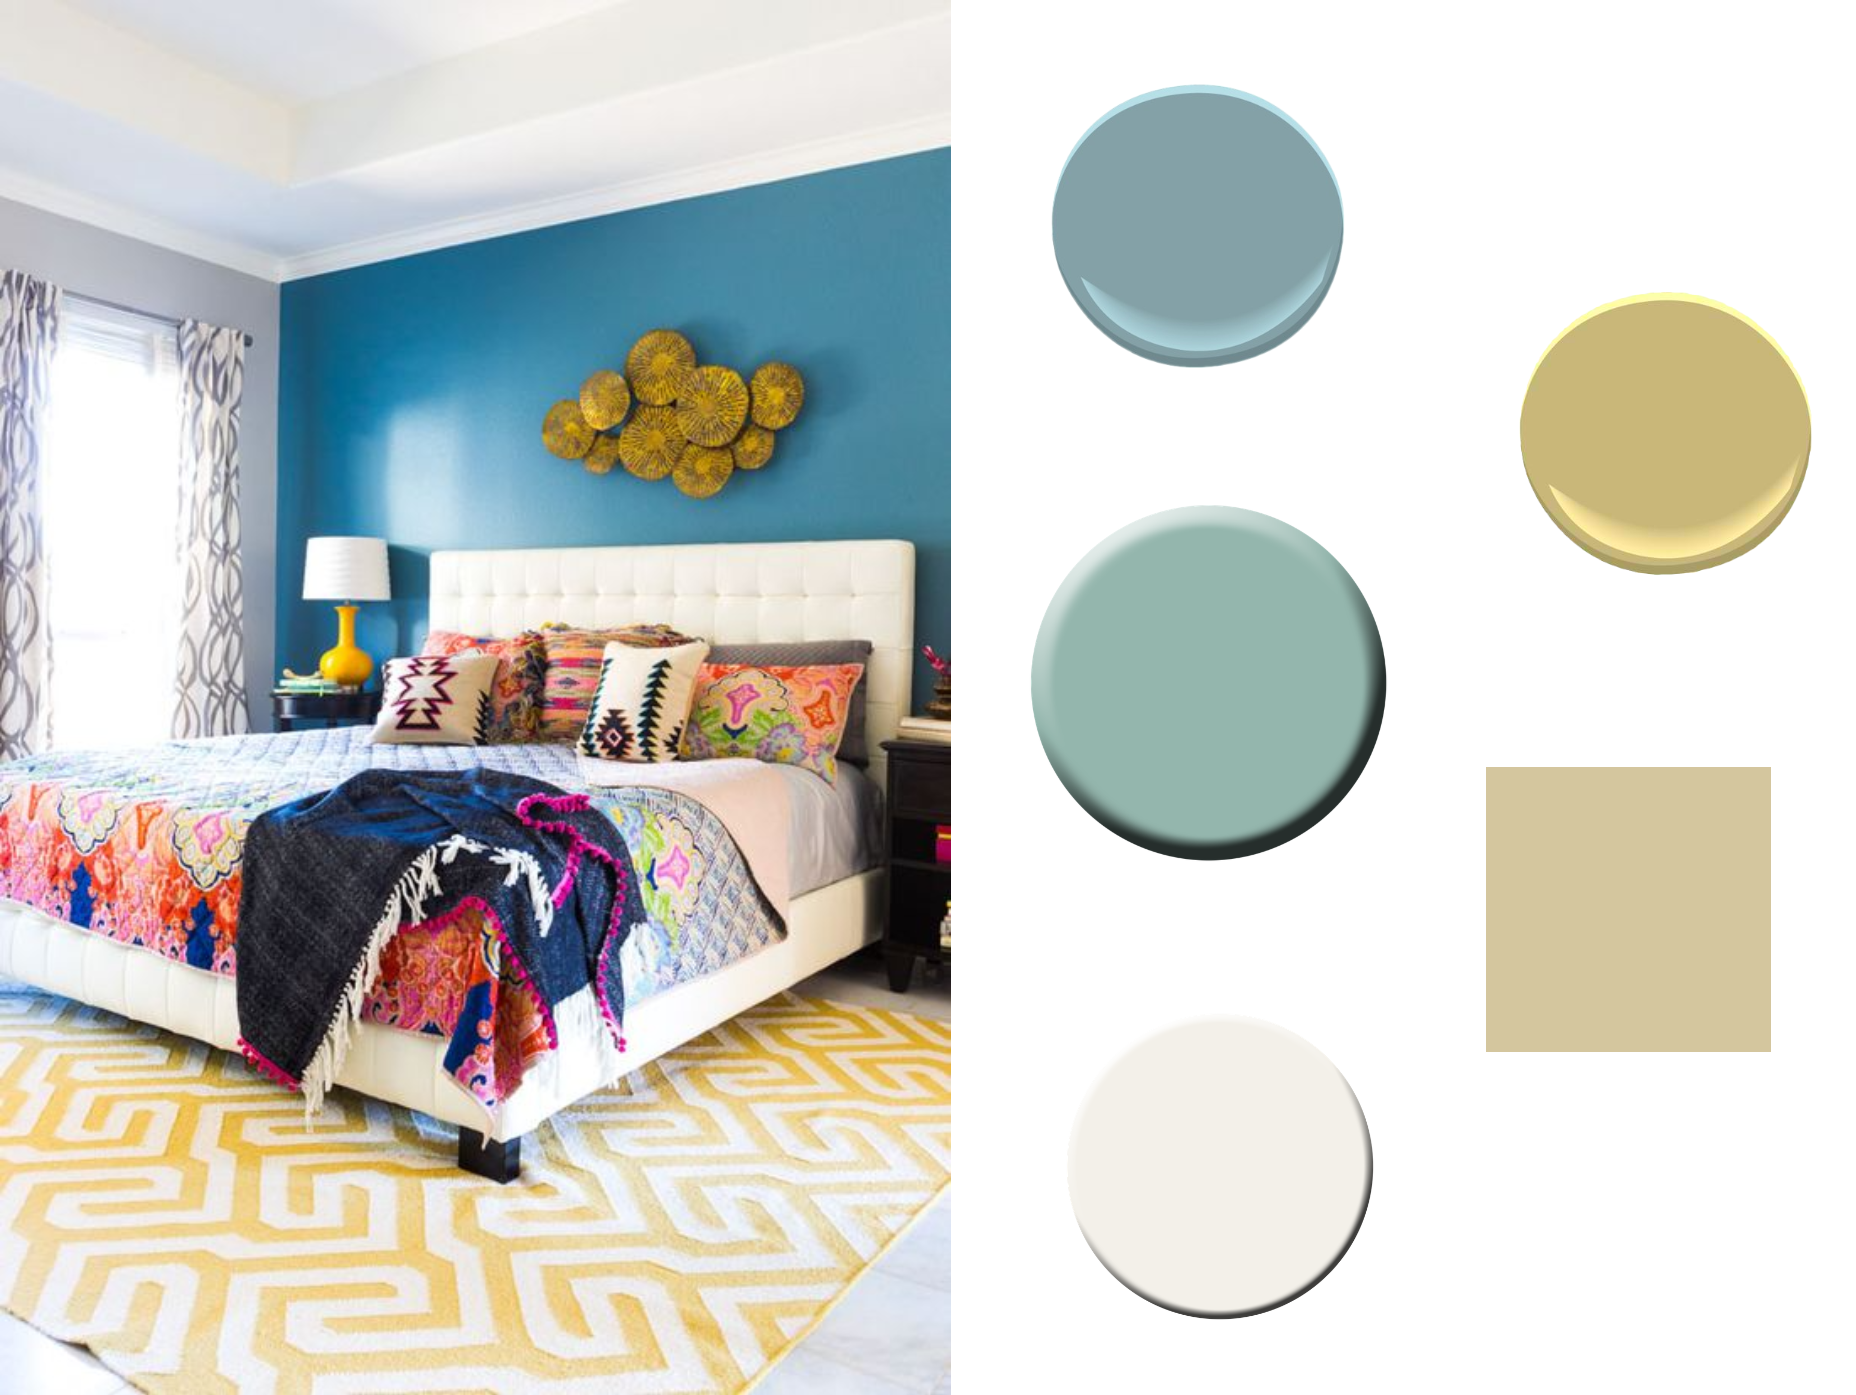 Bedroom Suites Online Painting online interior design q&a for free about the perfect paint color